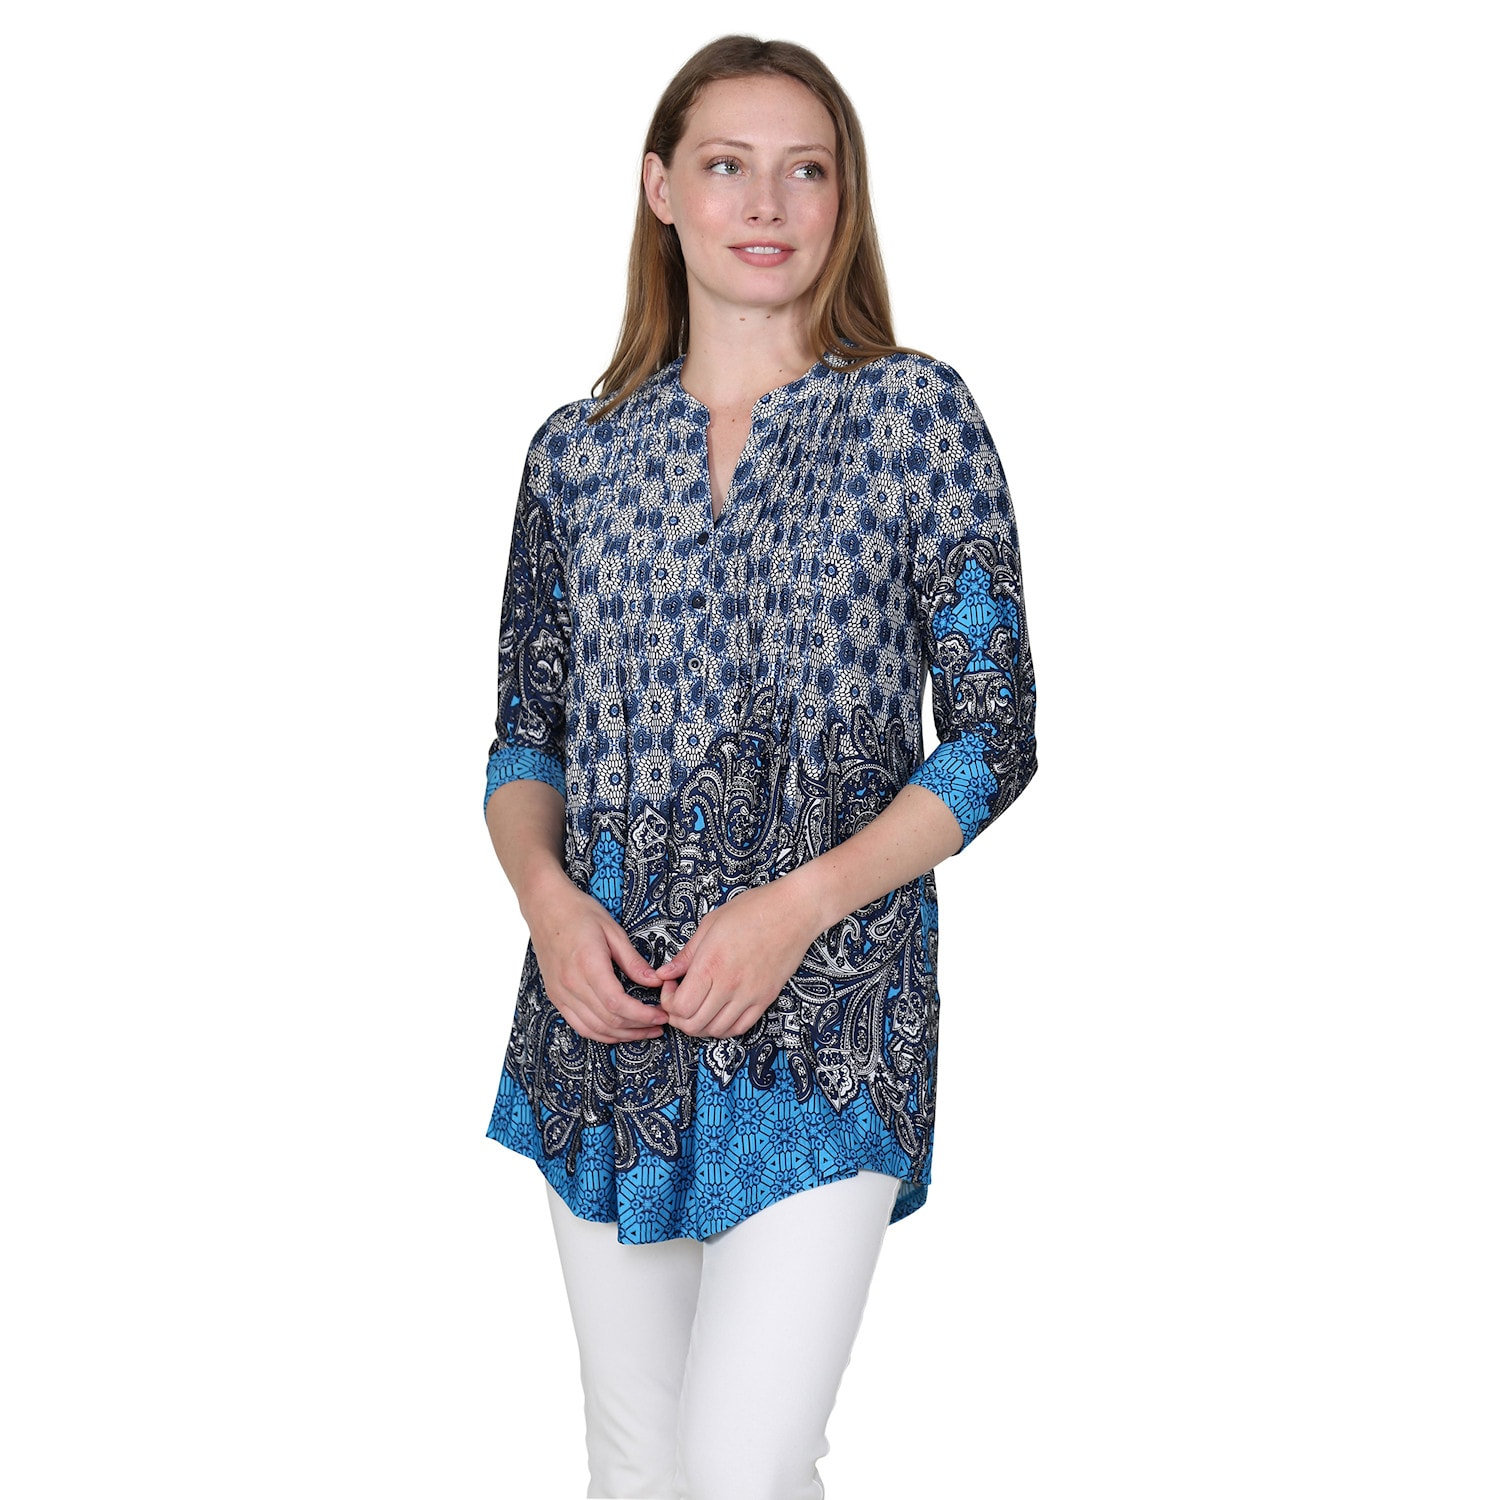 Women-039-s-Pleated-Paisley-Tunic-Top-3-4-Sleeve-Blouse-Ivory-Red-Turquoise-Navy thumbnail 9